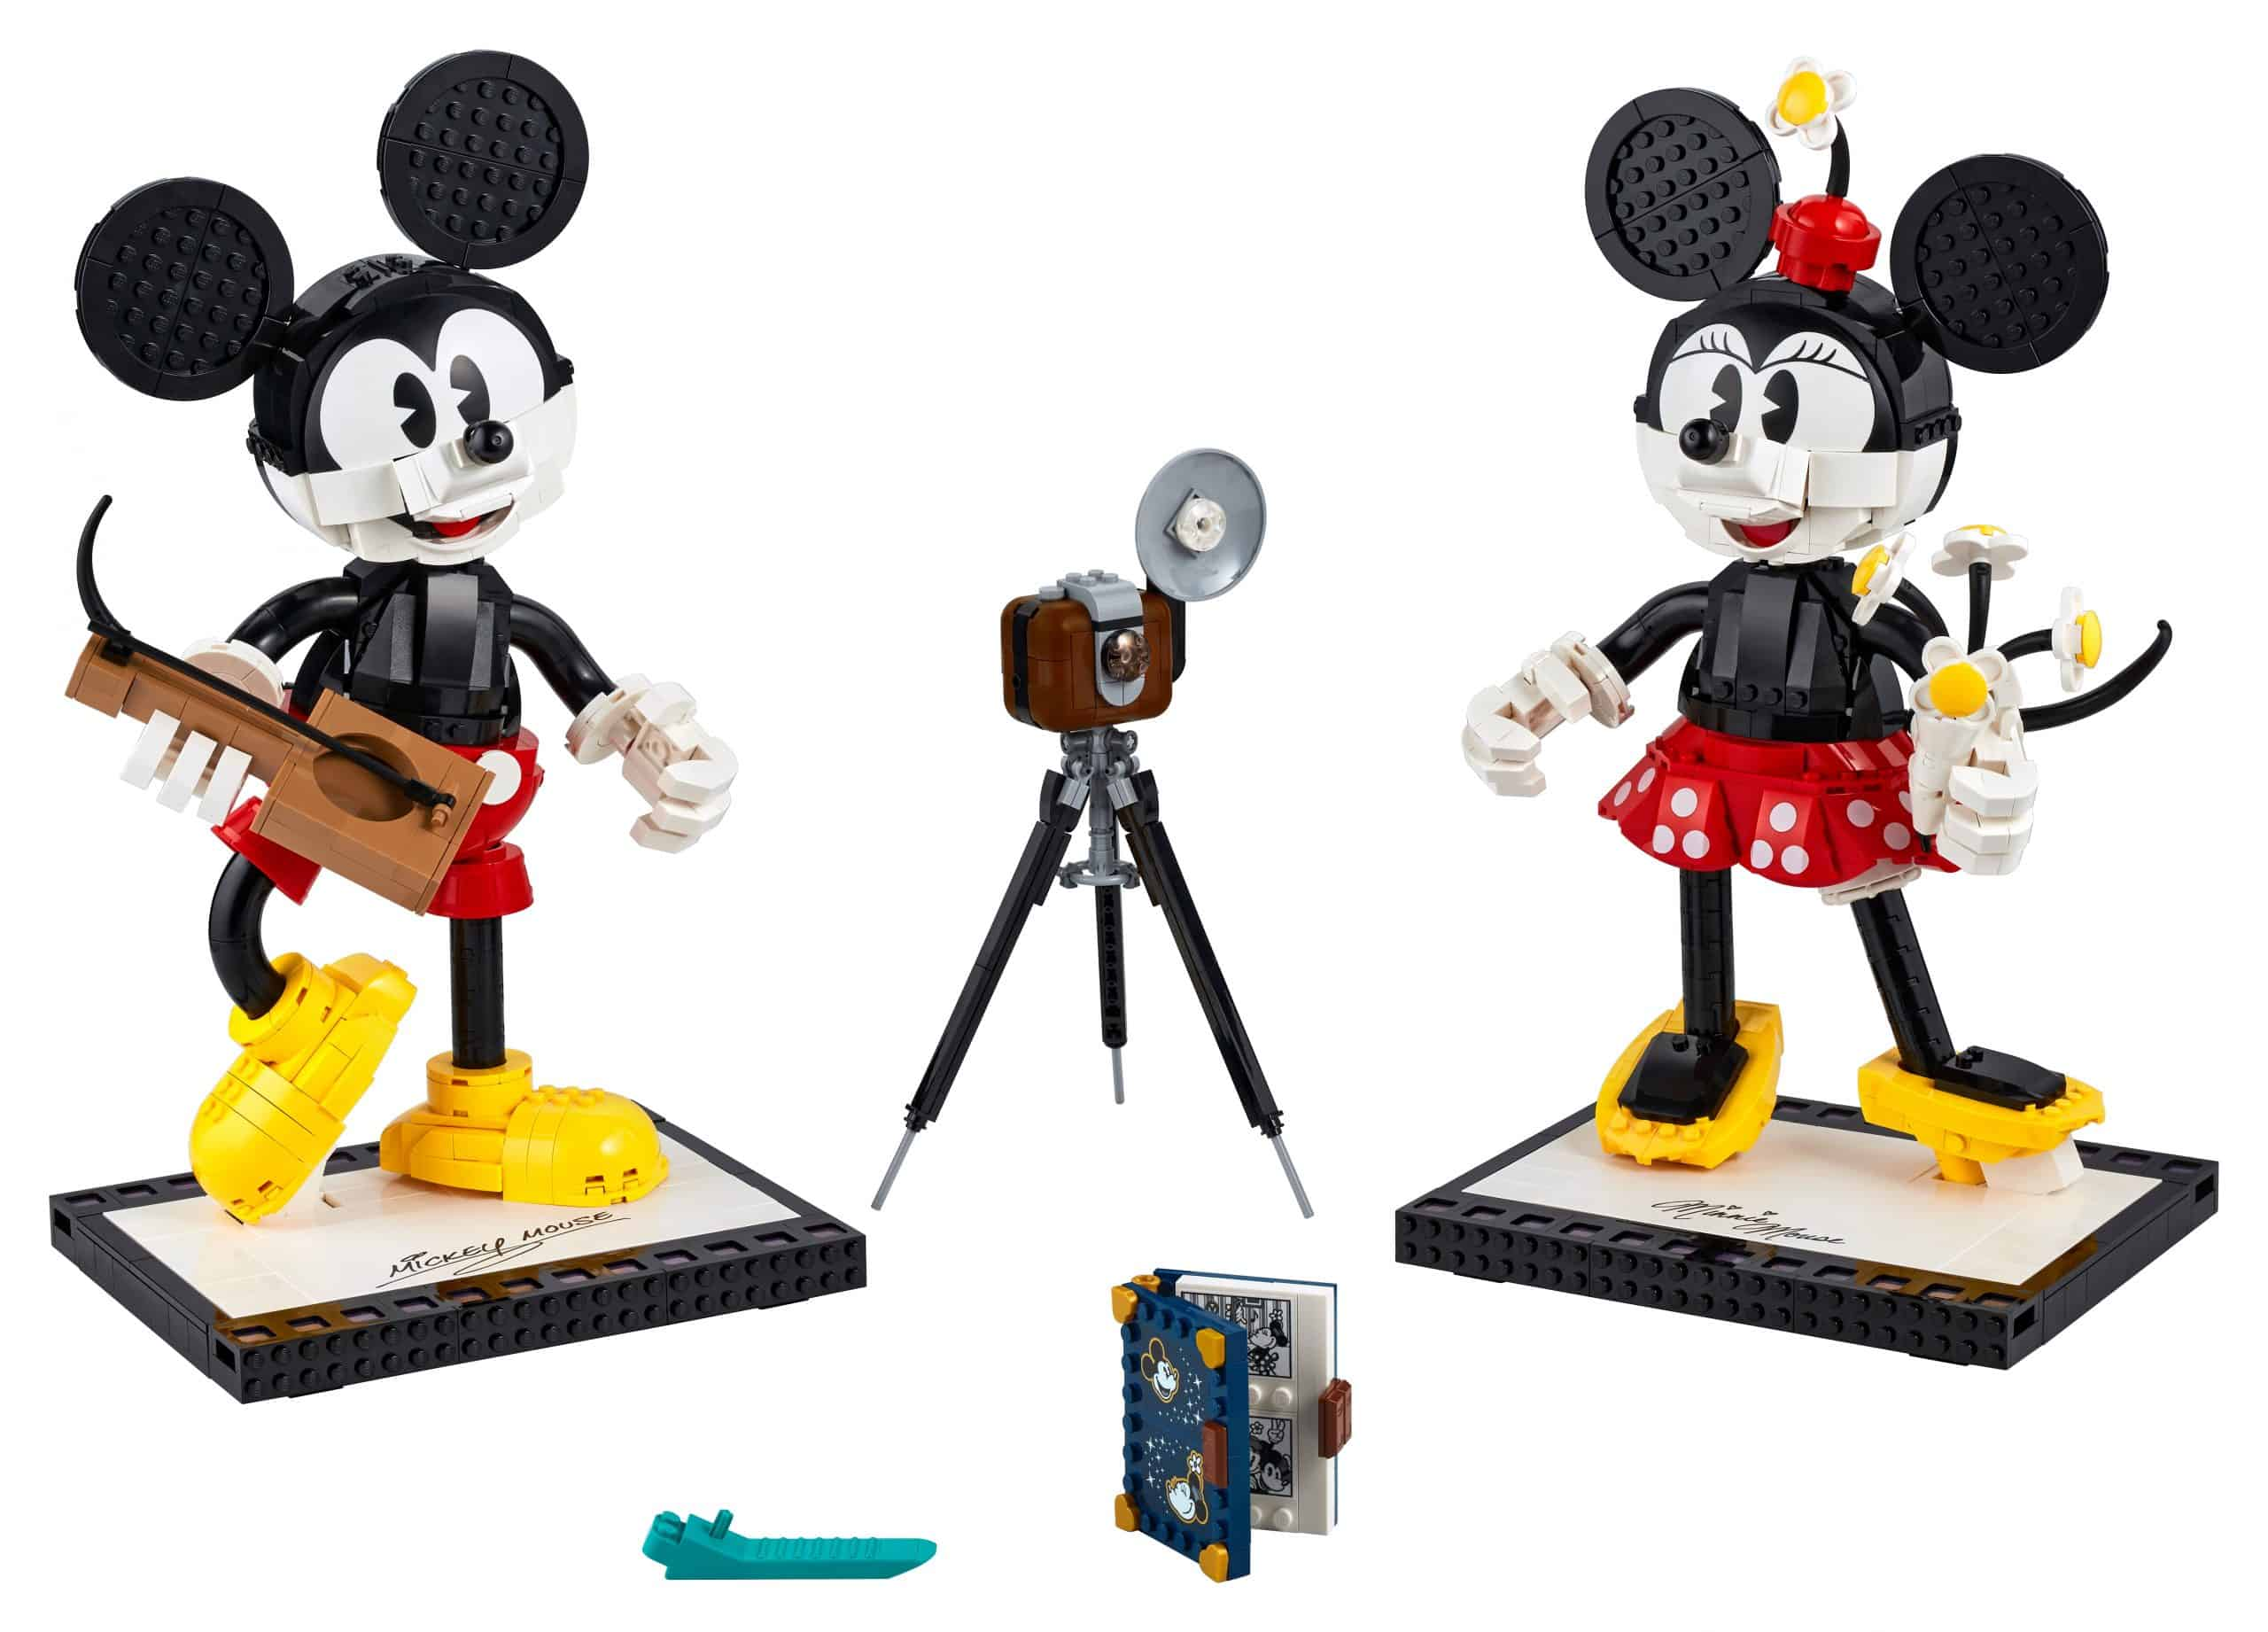 lego mickey mouse minnie mouse personages om zelf te bouwen 43179 scaled